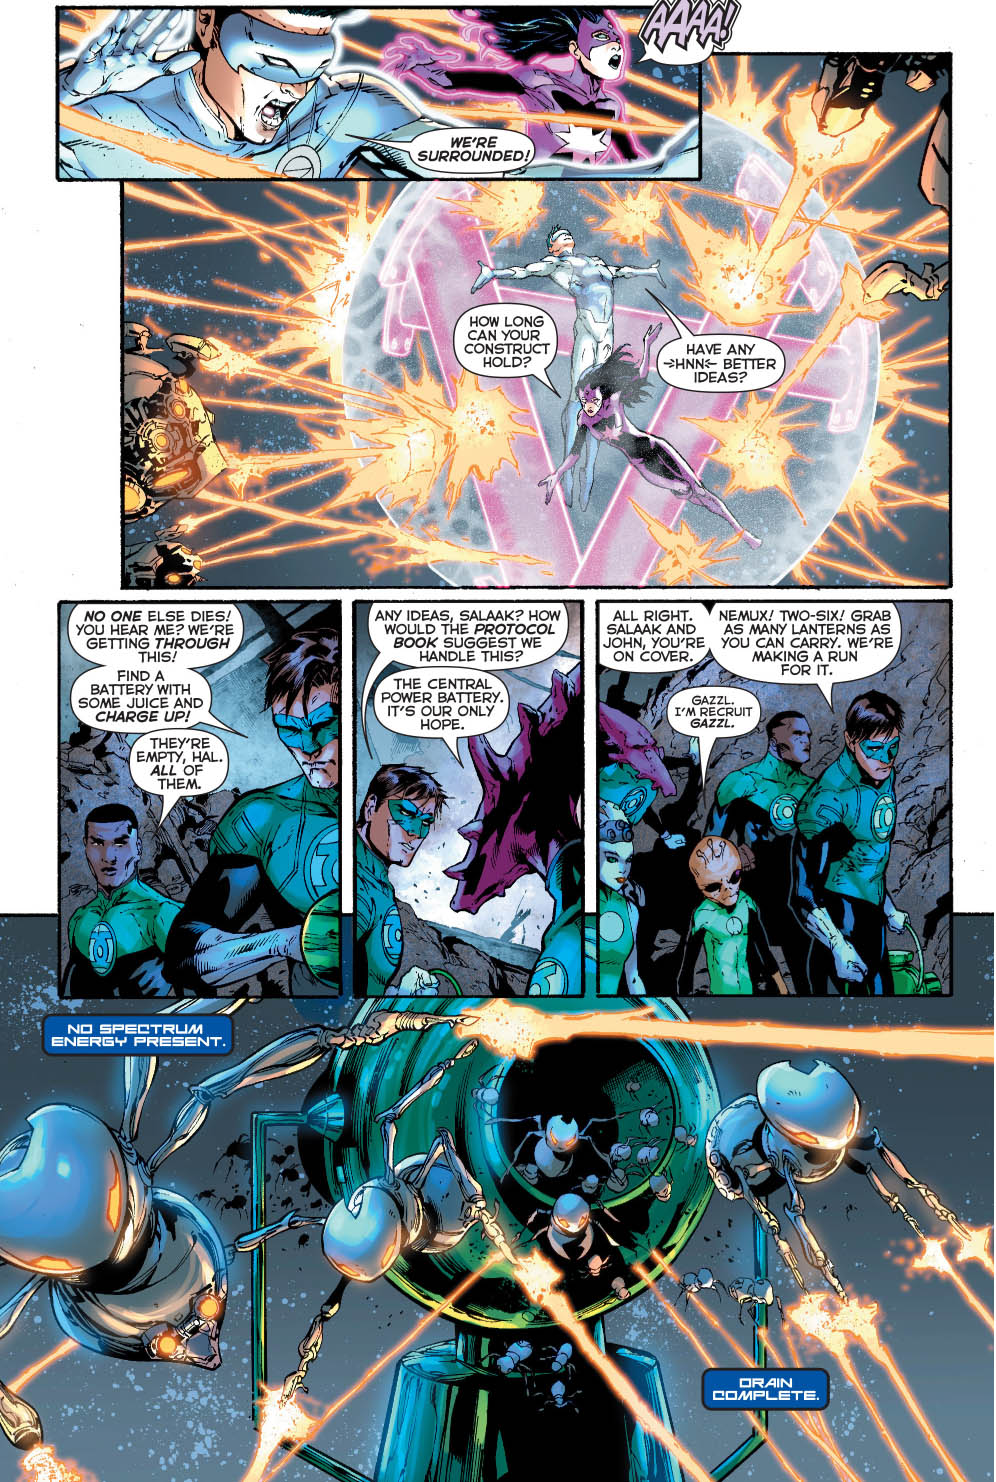 Relic Destroys The Green Lantern Central Power Battery 0